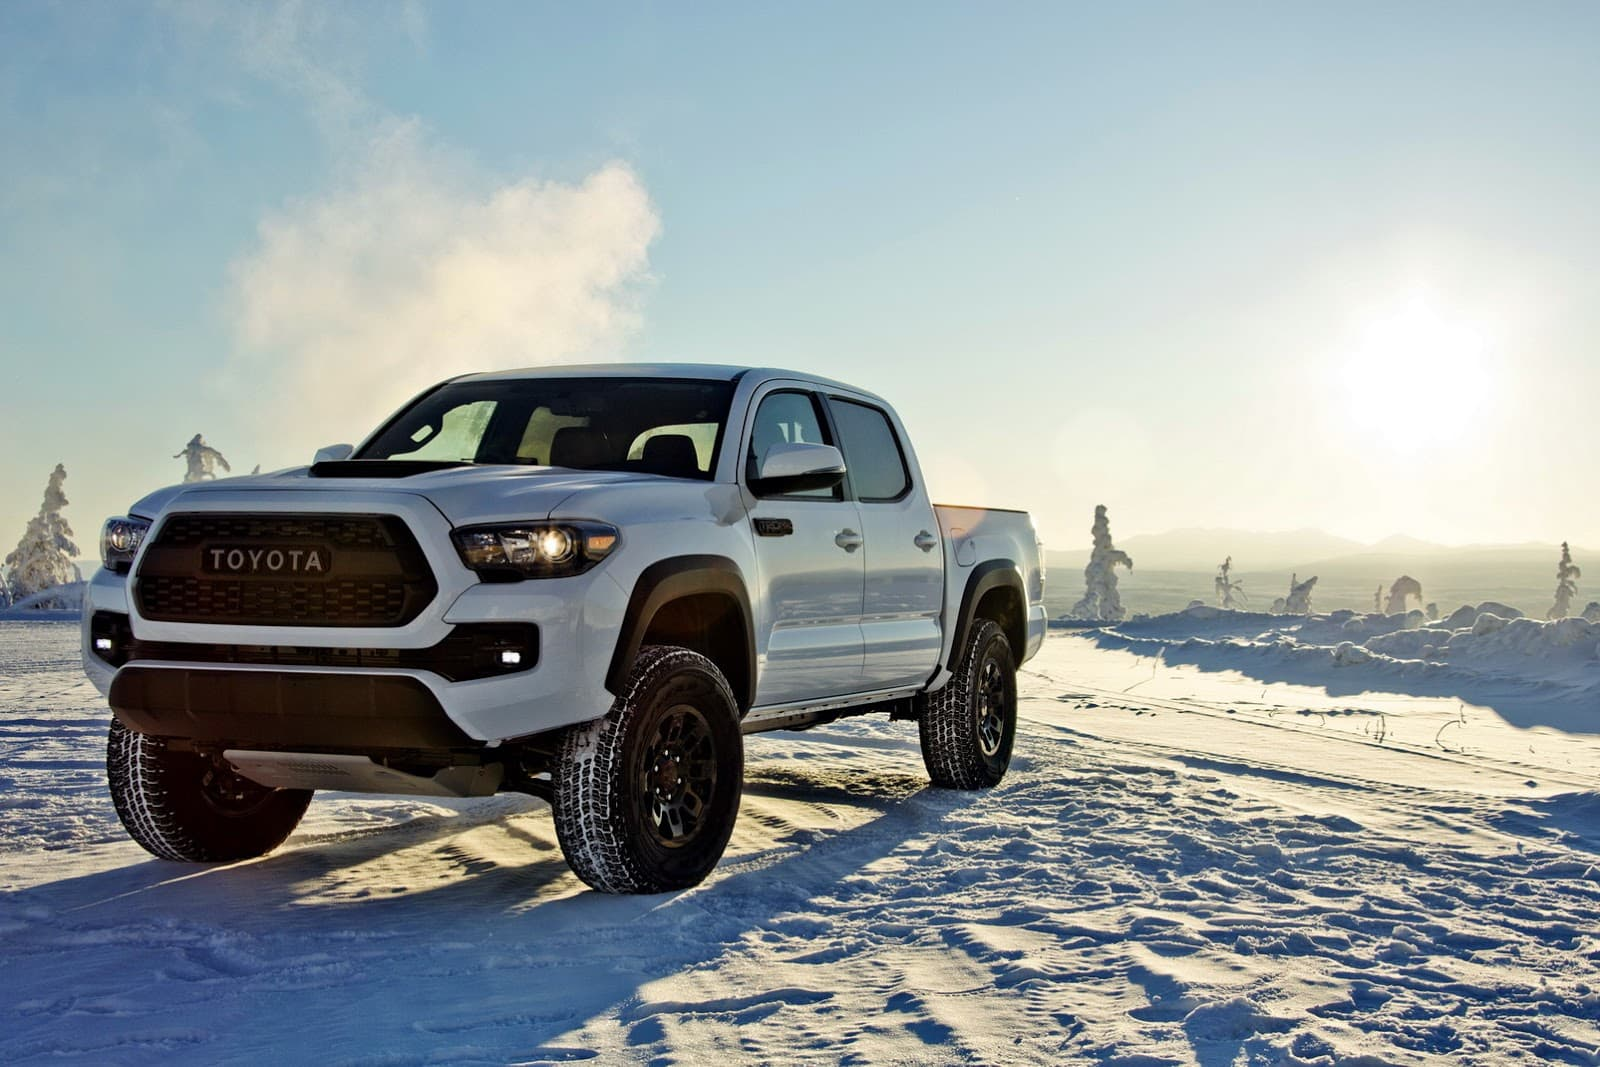 17 Toyota Tacoma 2016 Wallpapers Hd High Resolution Download